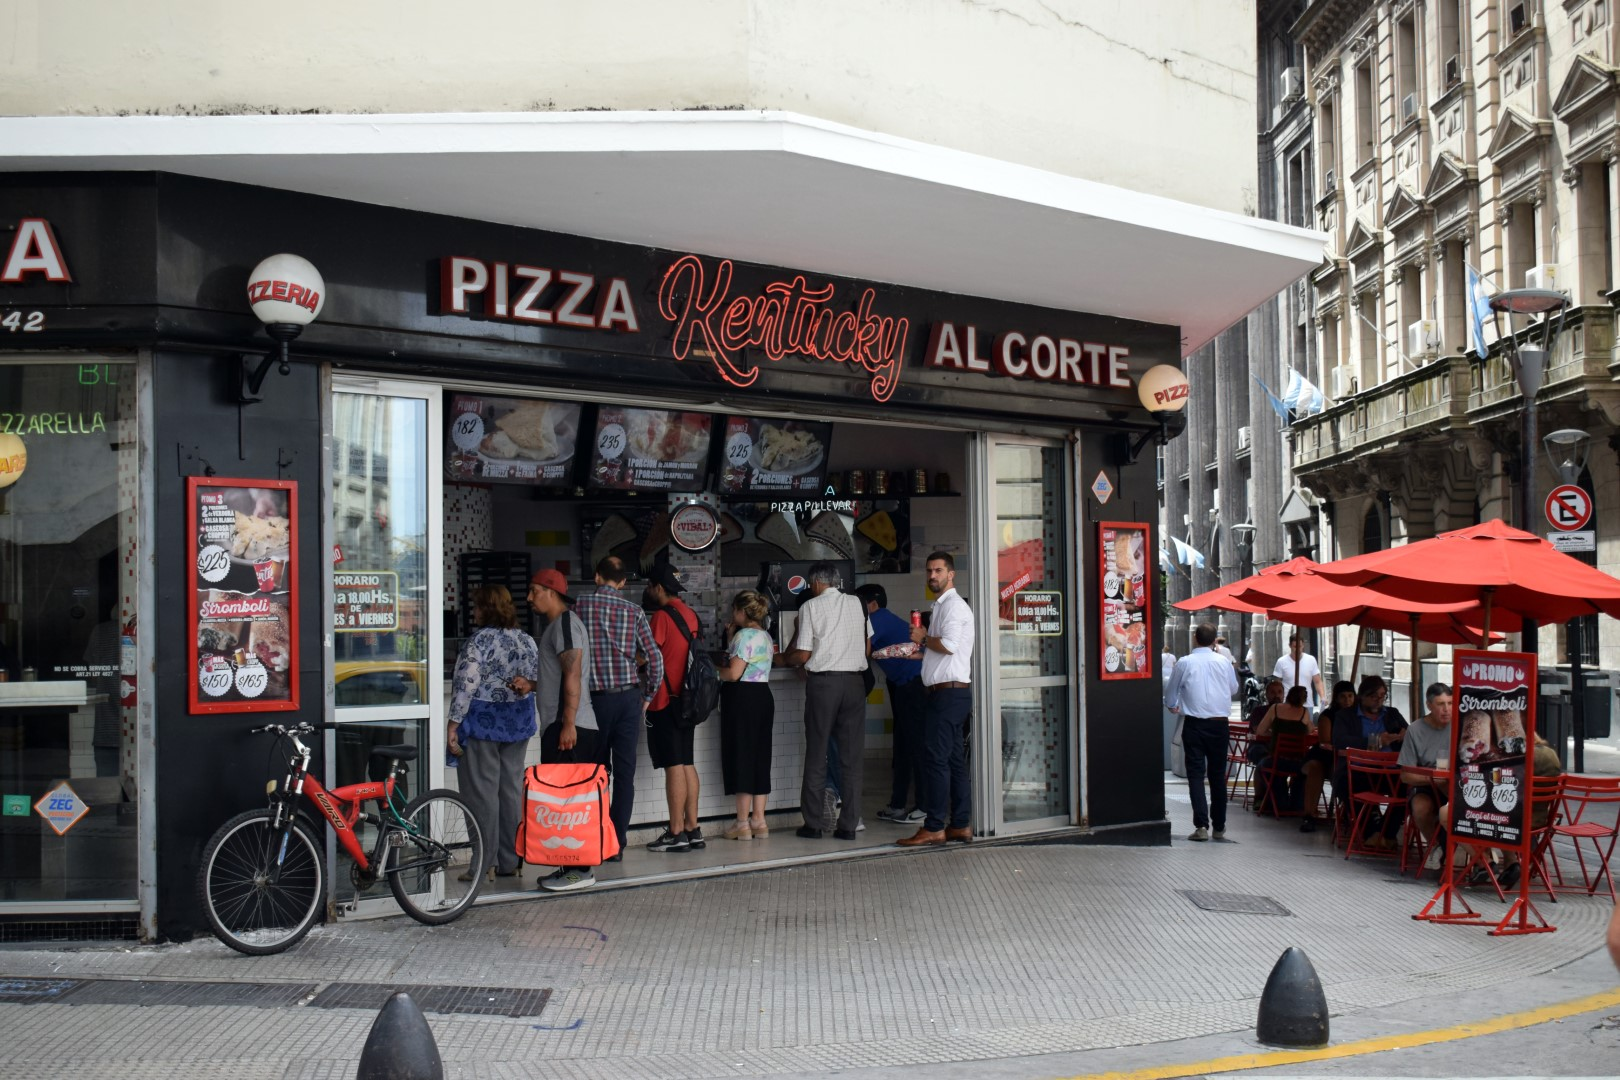 Ubiquitous pizza joint Kentucky, Microcentro, Buenos Aires